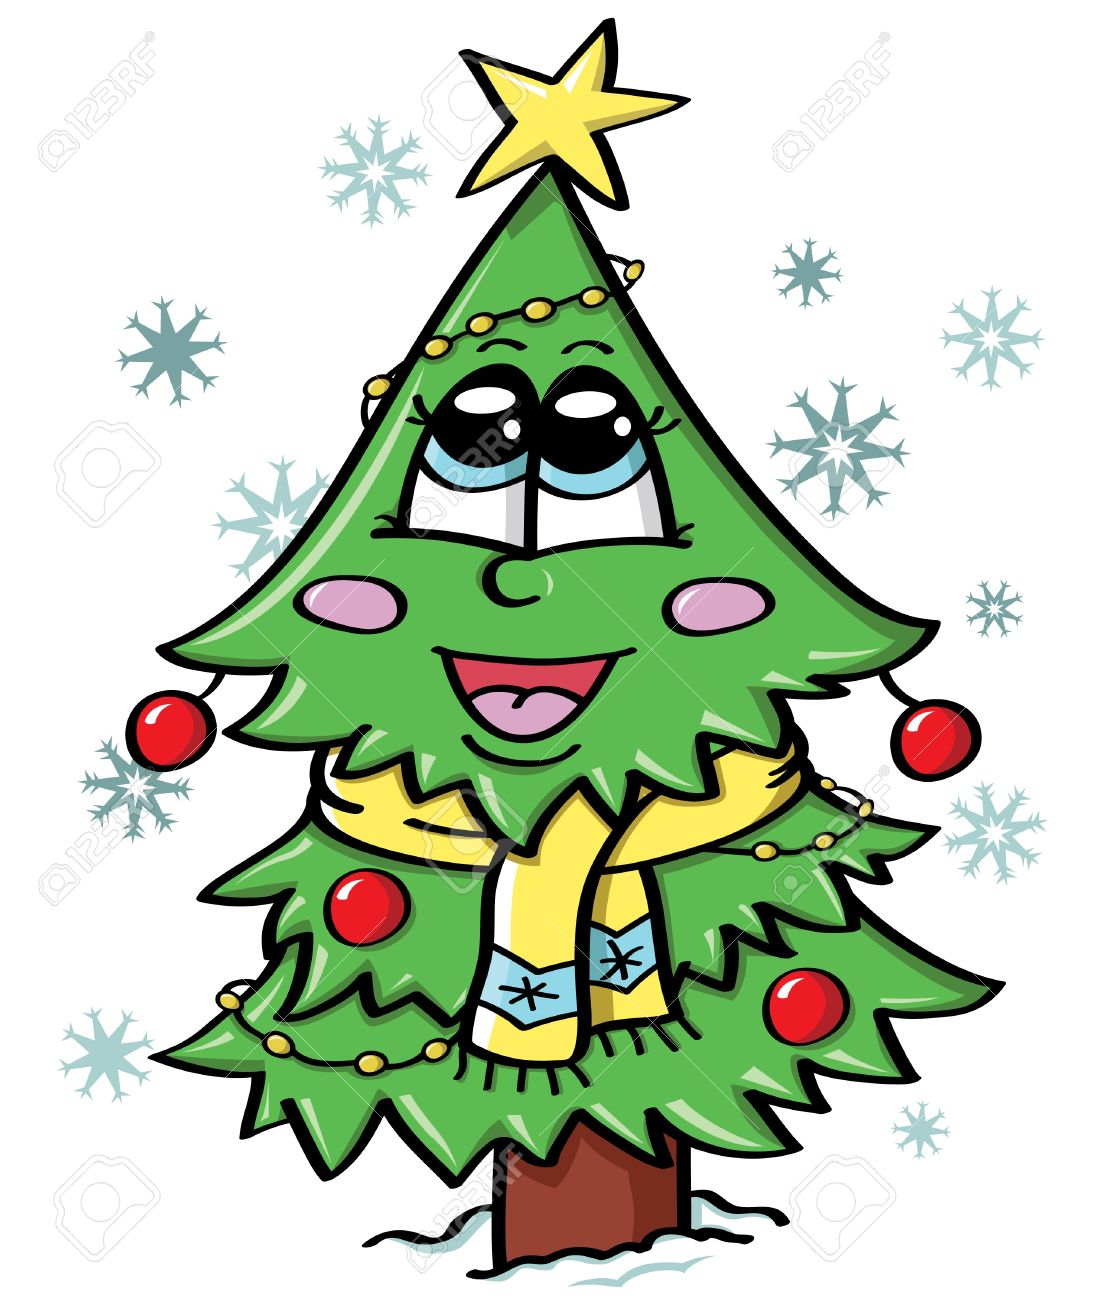 Cute Christmas Pictures.Illustration Of Cute Christmas Tree